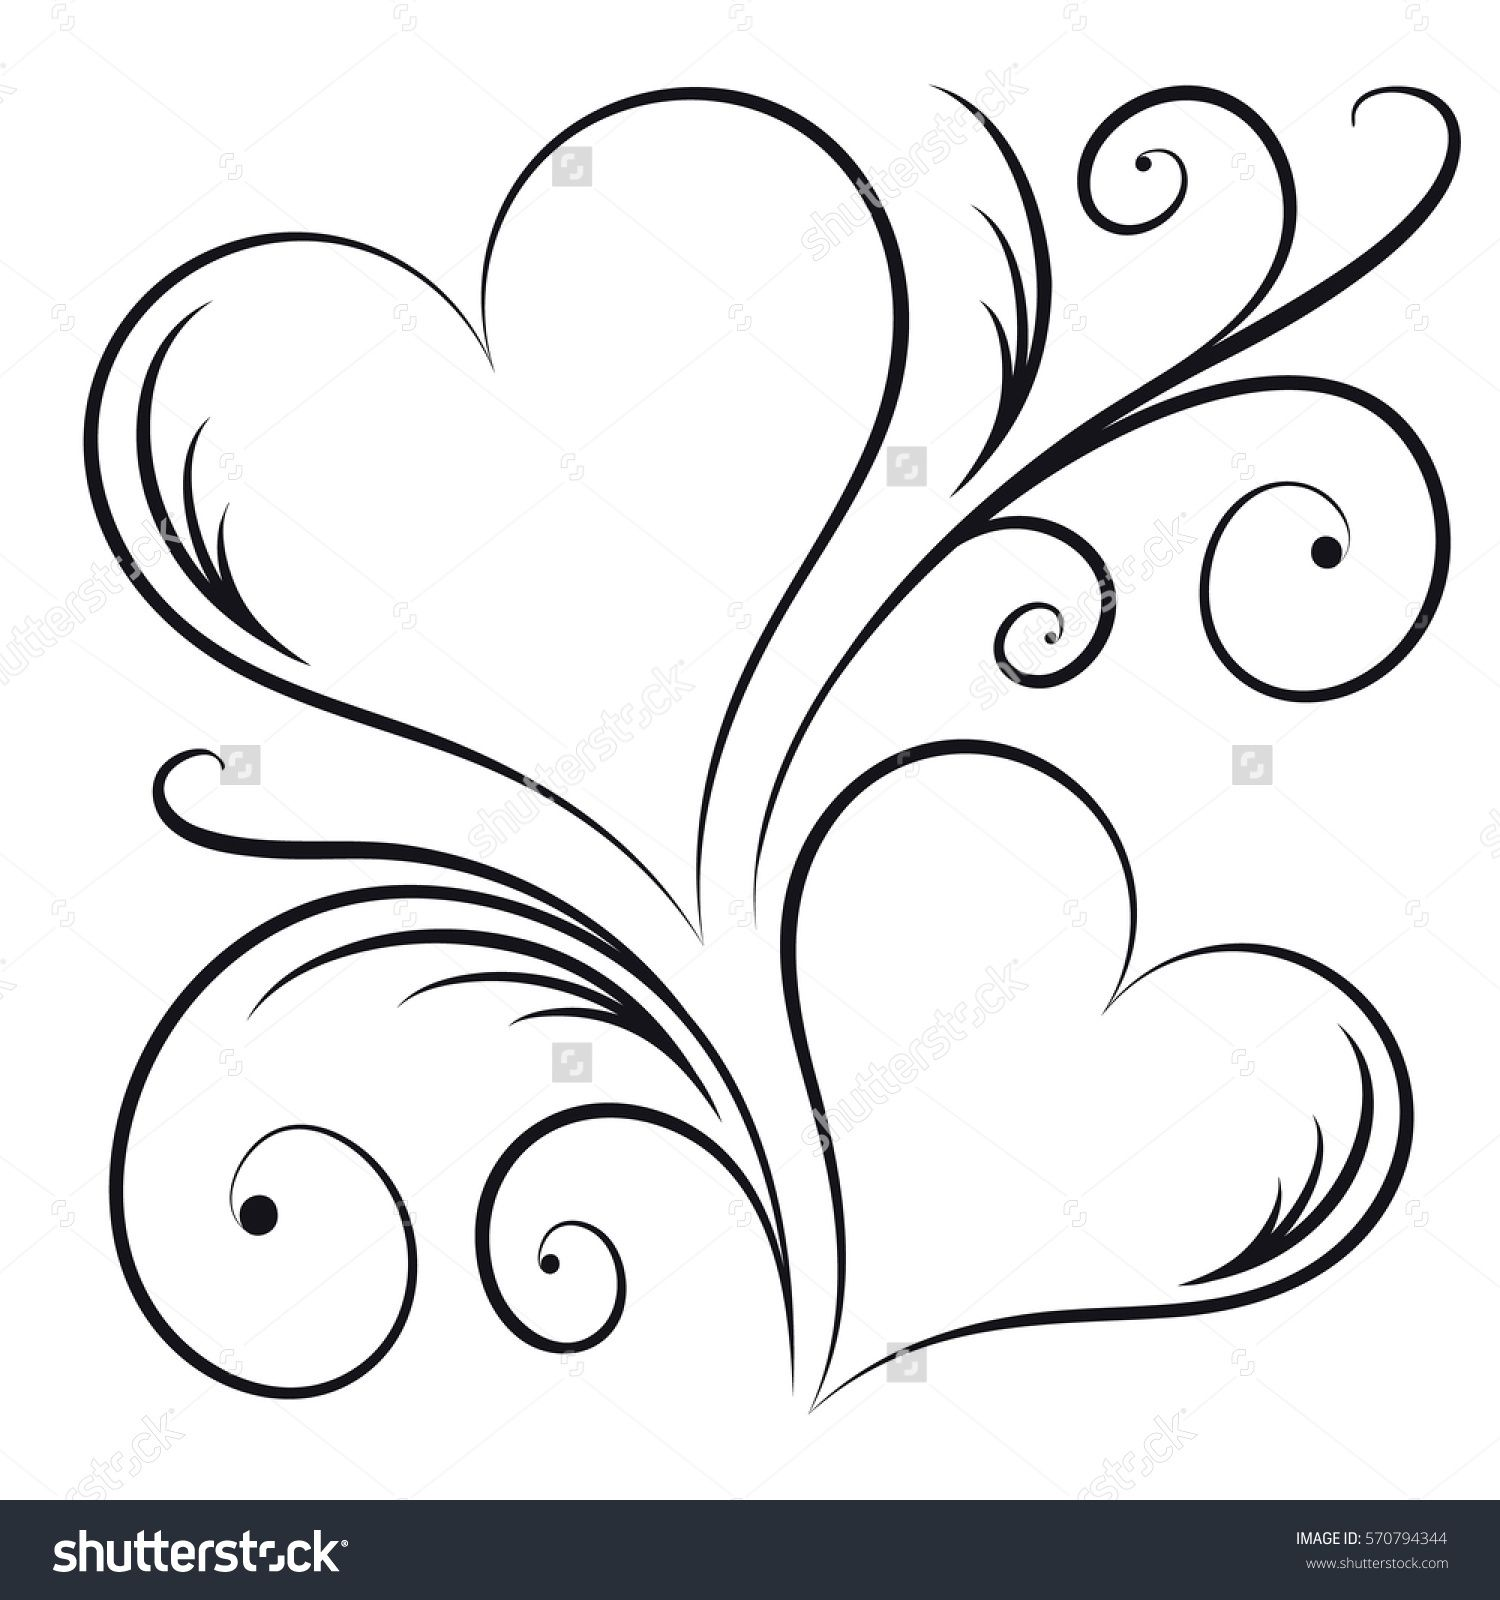 Two Hearts Swirl Elements Stock Vector (Royalty Free) 570794344 is part of Heart tattoo designs - Find Two Hearts Swirl Elements stock images in HD and millions of other royaltyfree stock photos, illustrations and vectors in the Shutterstock collection   Thousands of new, highquality pictures added every day